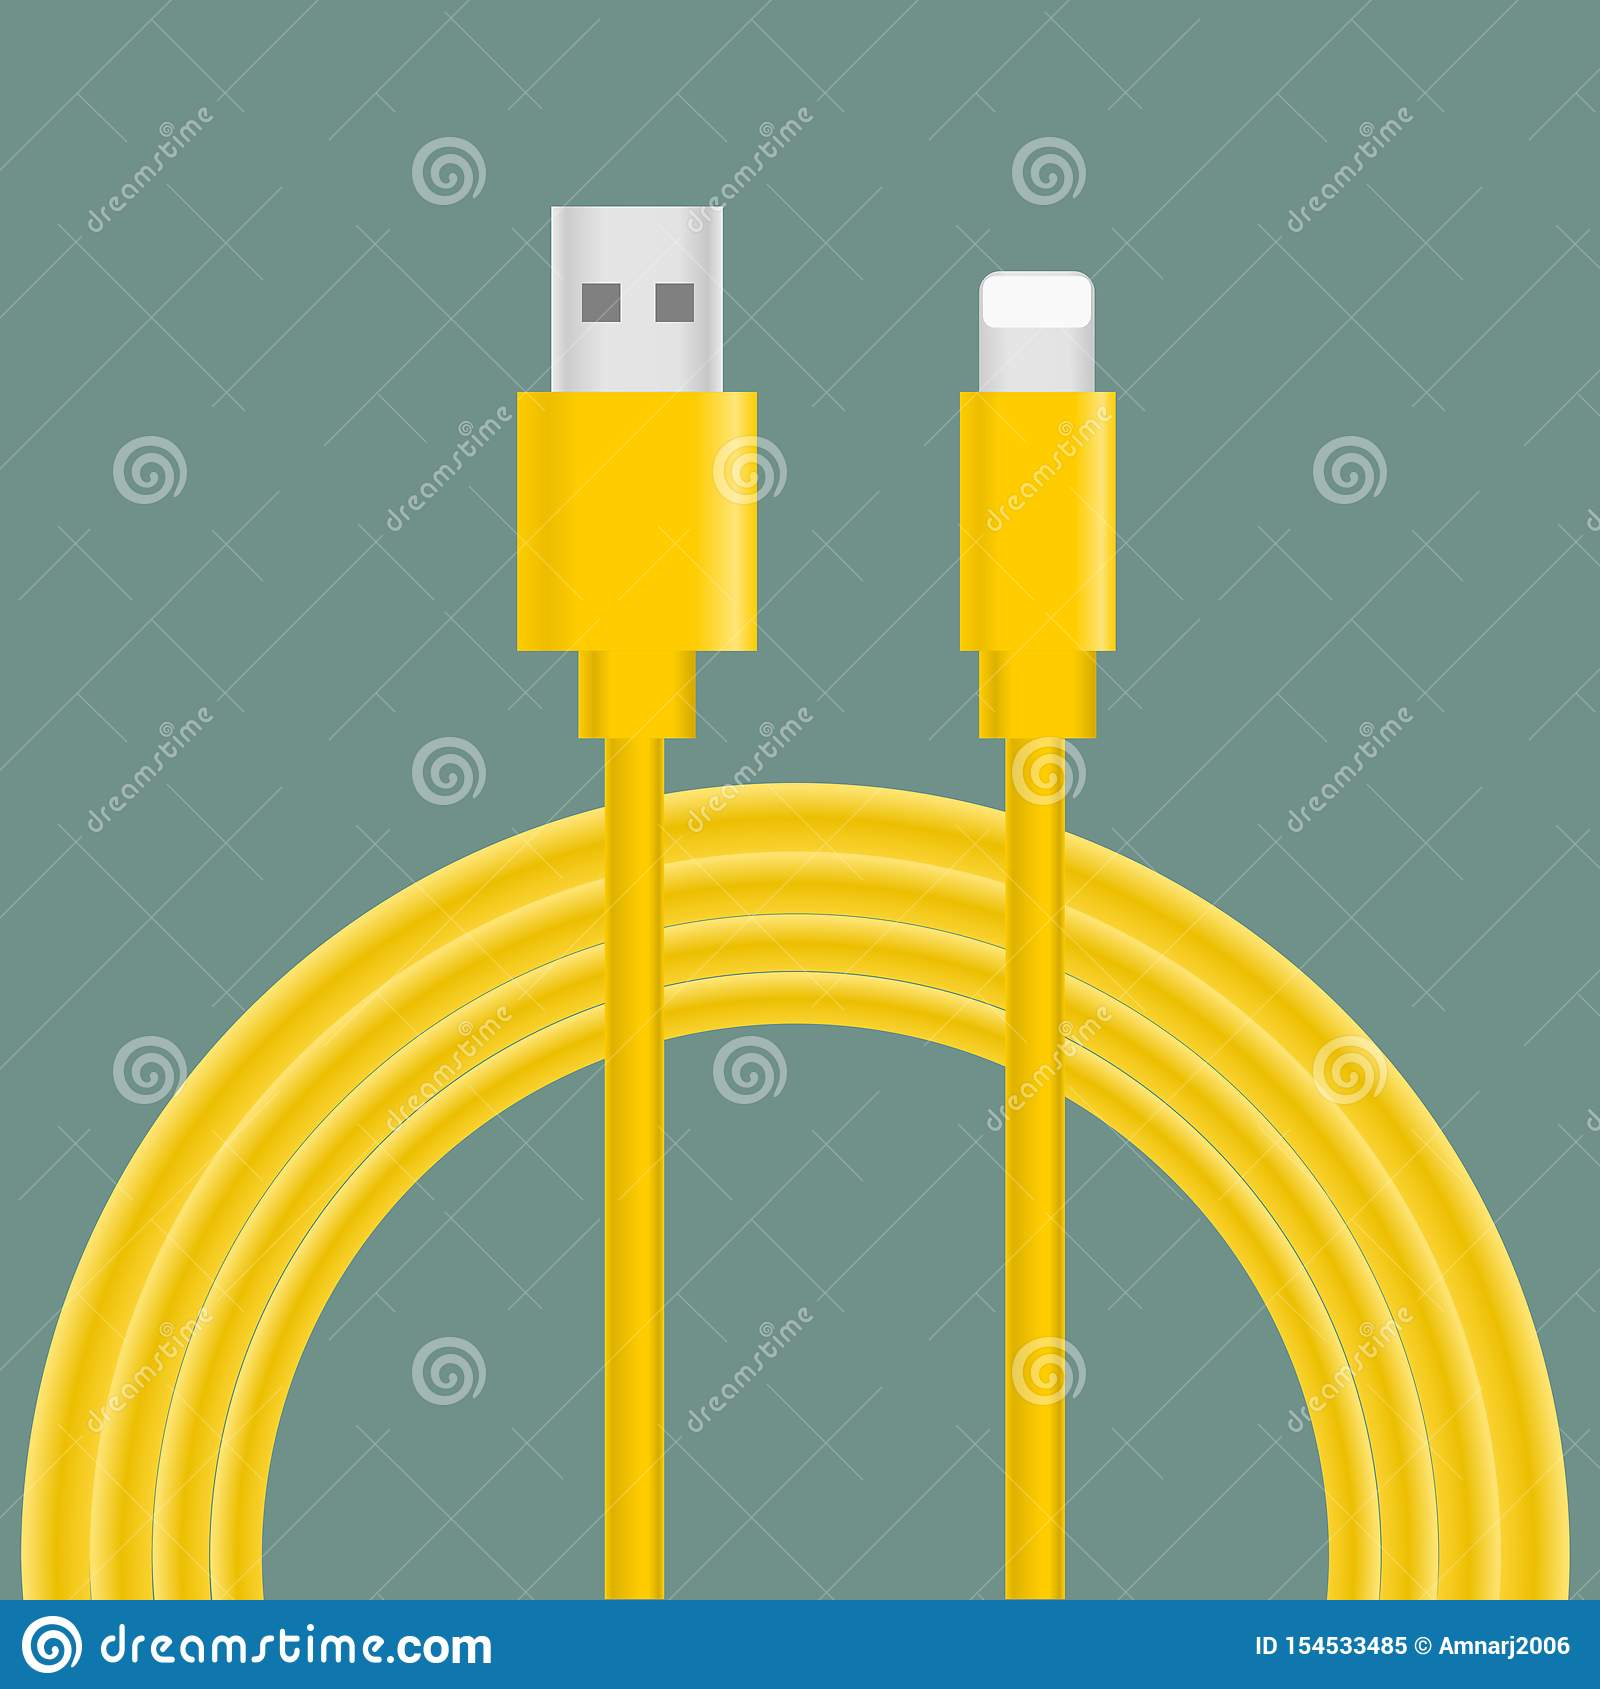 USB charging cable illustration